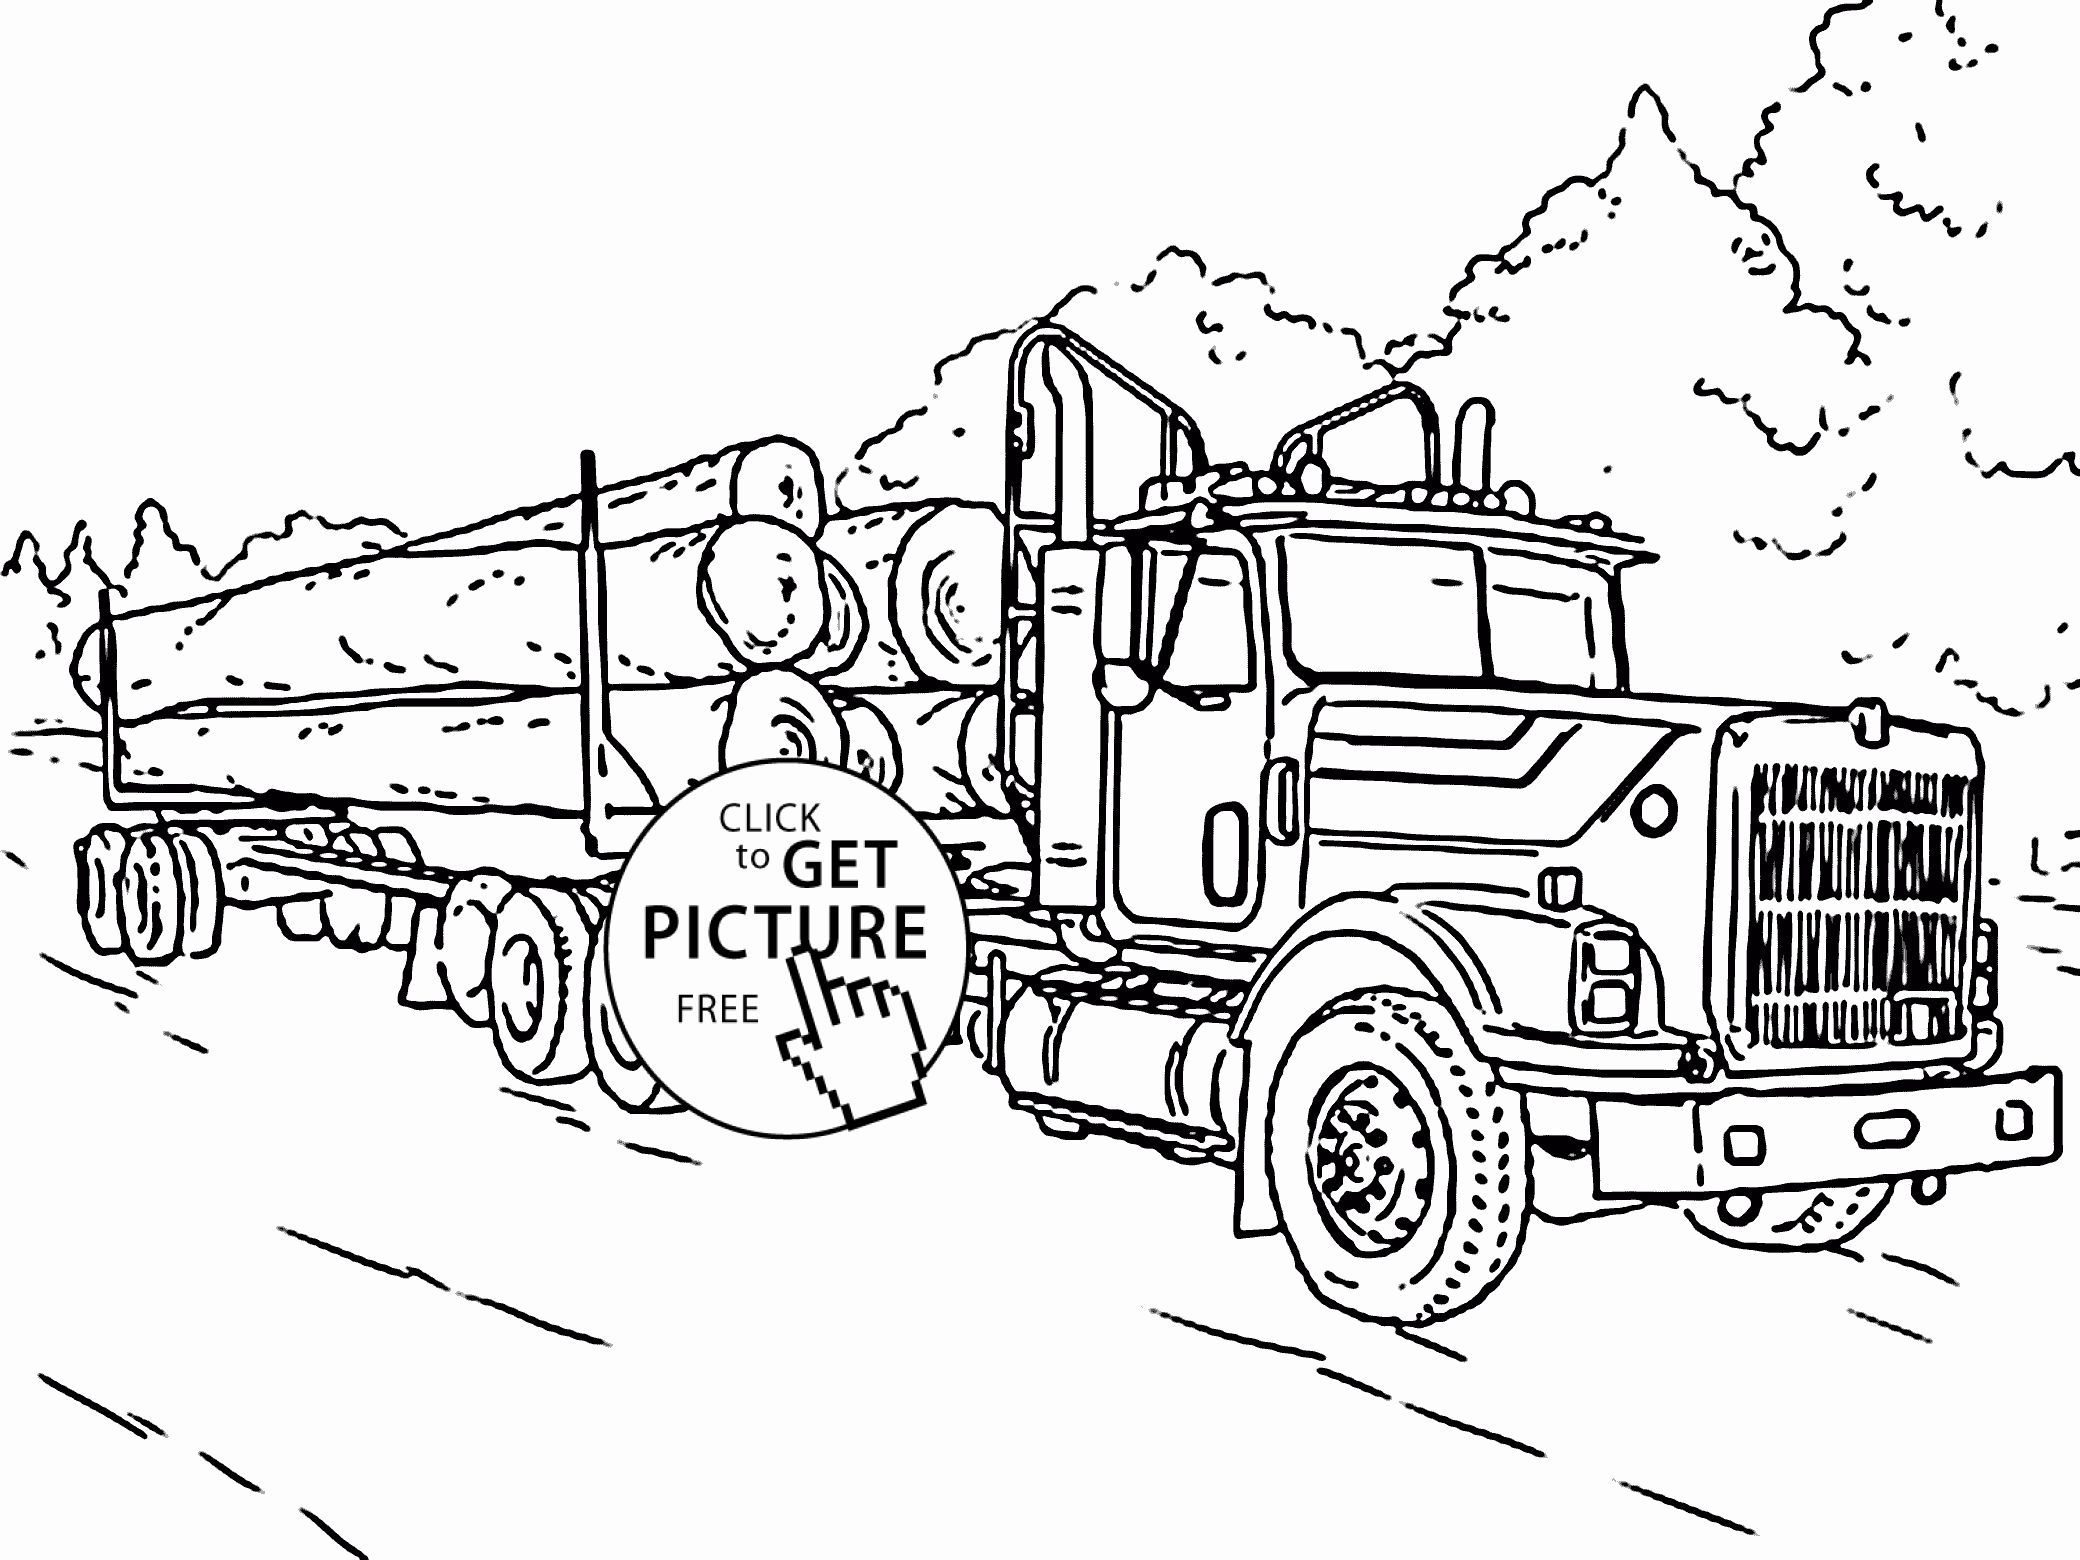 Ford Truck Coloring Page Fresh Coloring Sheets Staggeringe Truck Coloring Pages Lego P Truck Coloring Pages Monster Truck Coloring Pages Tractor Coloring Pages